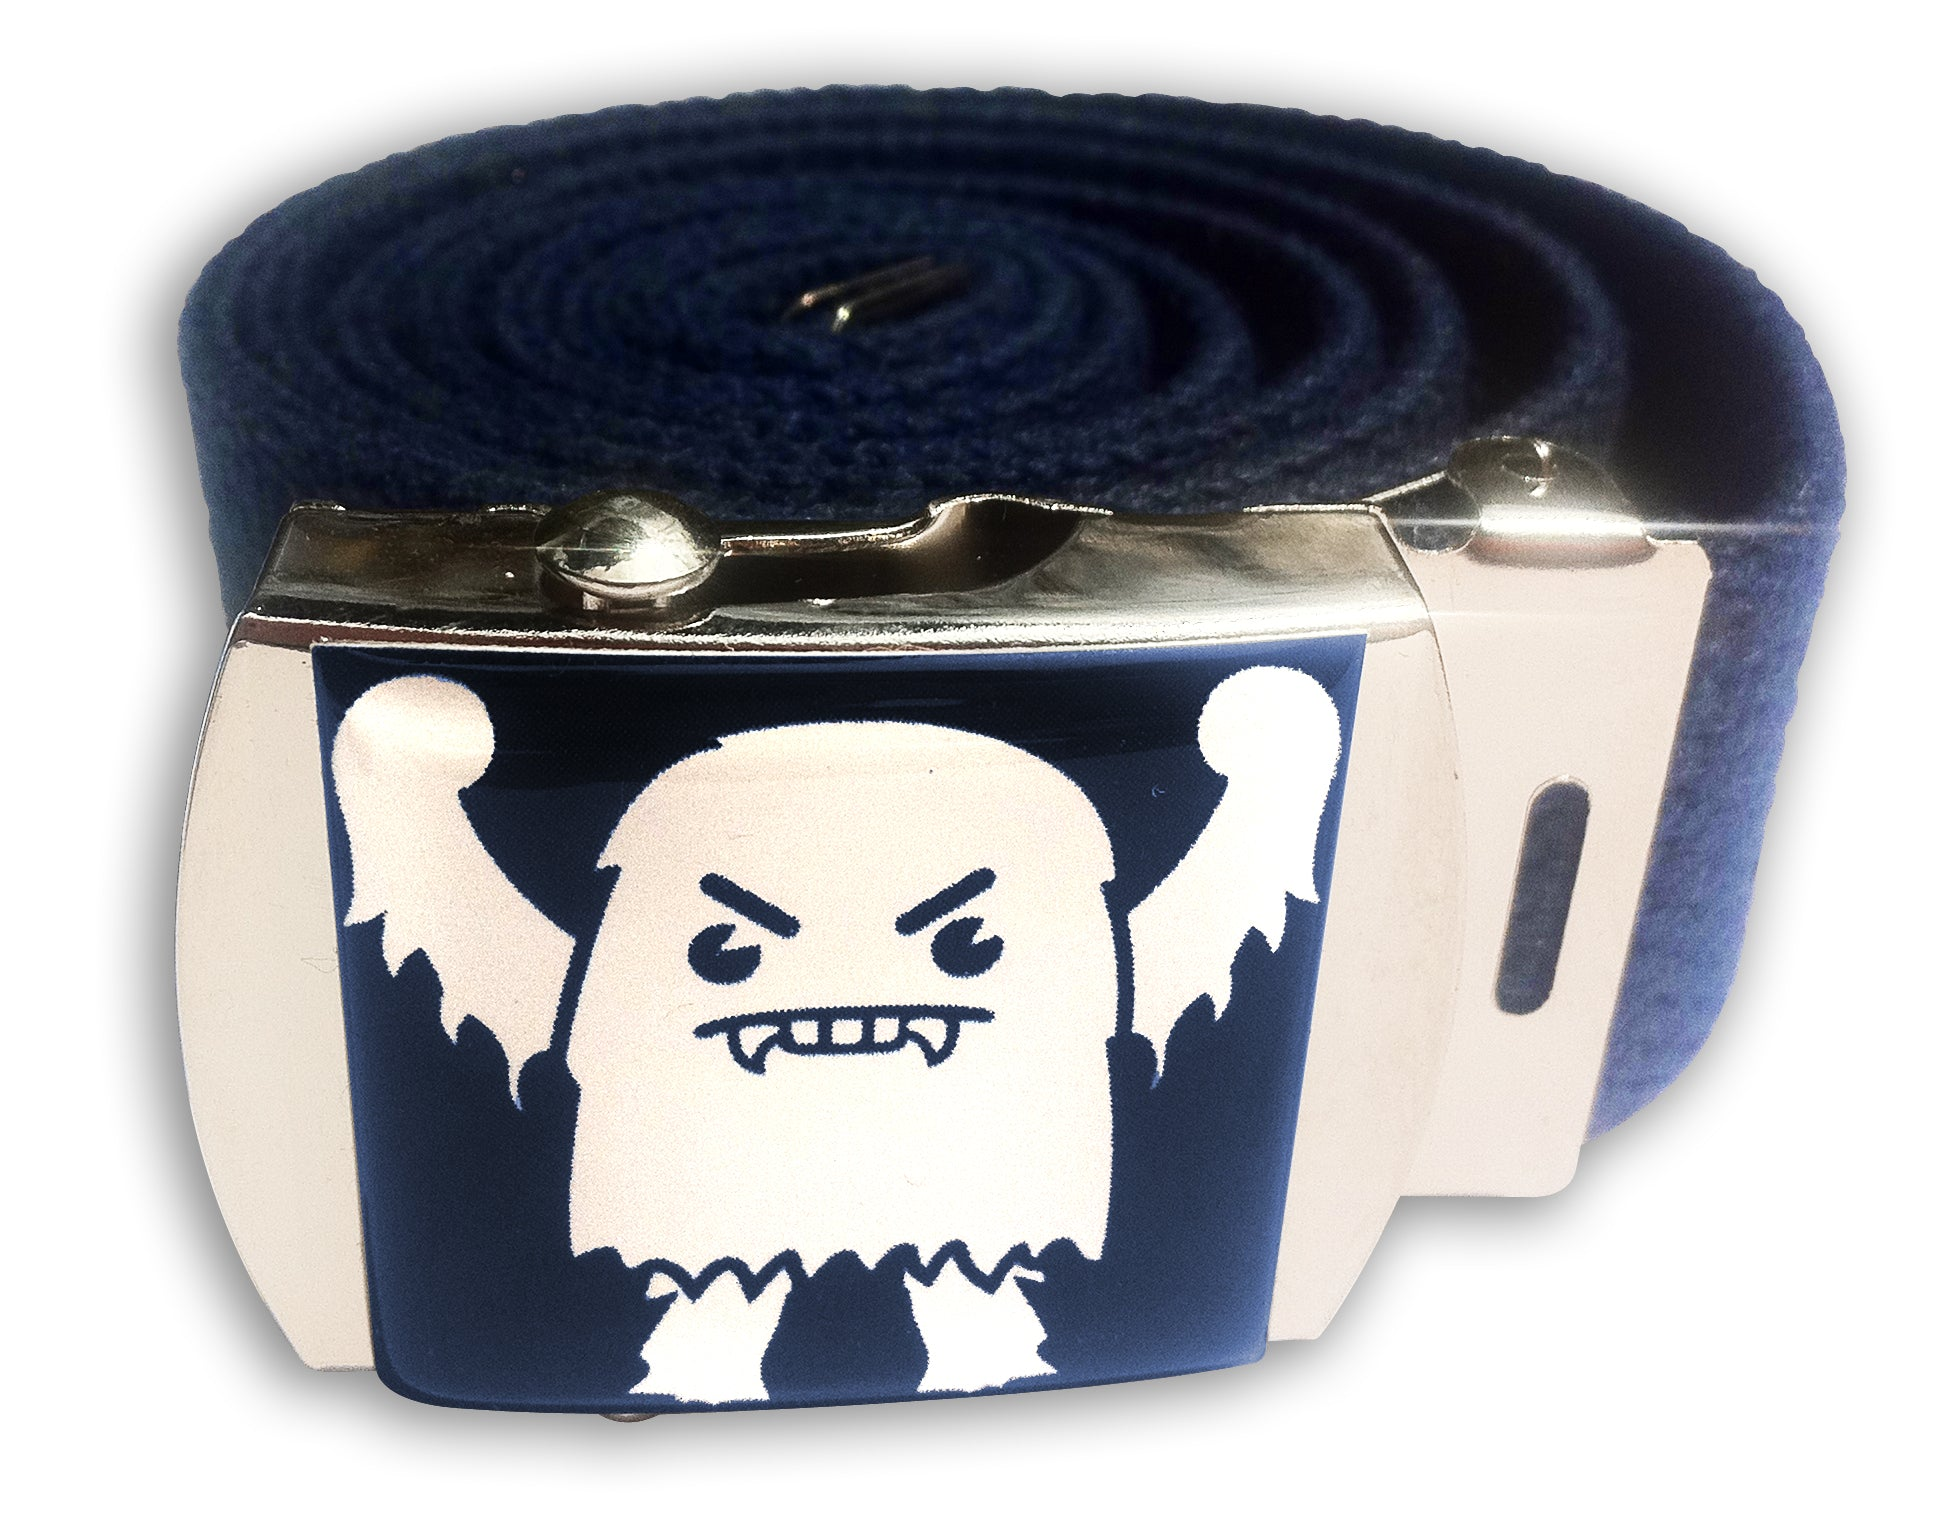 Yeti Belt - By Ex-Boyfriend